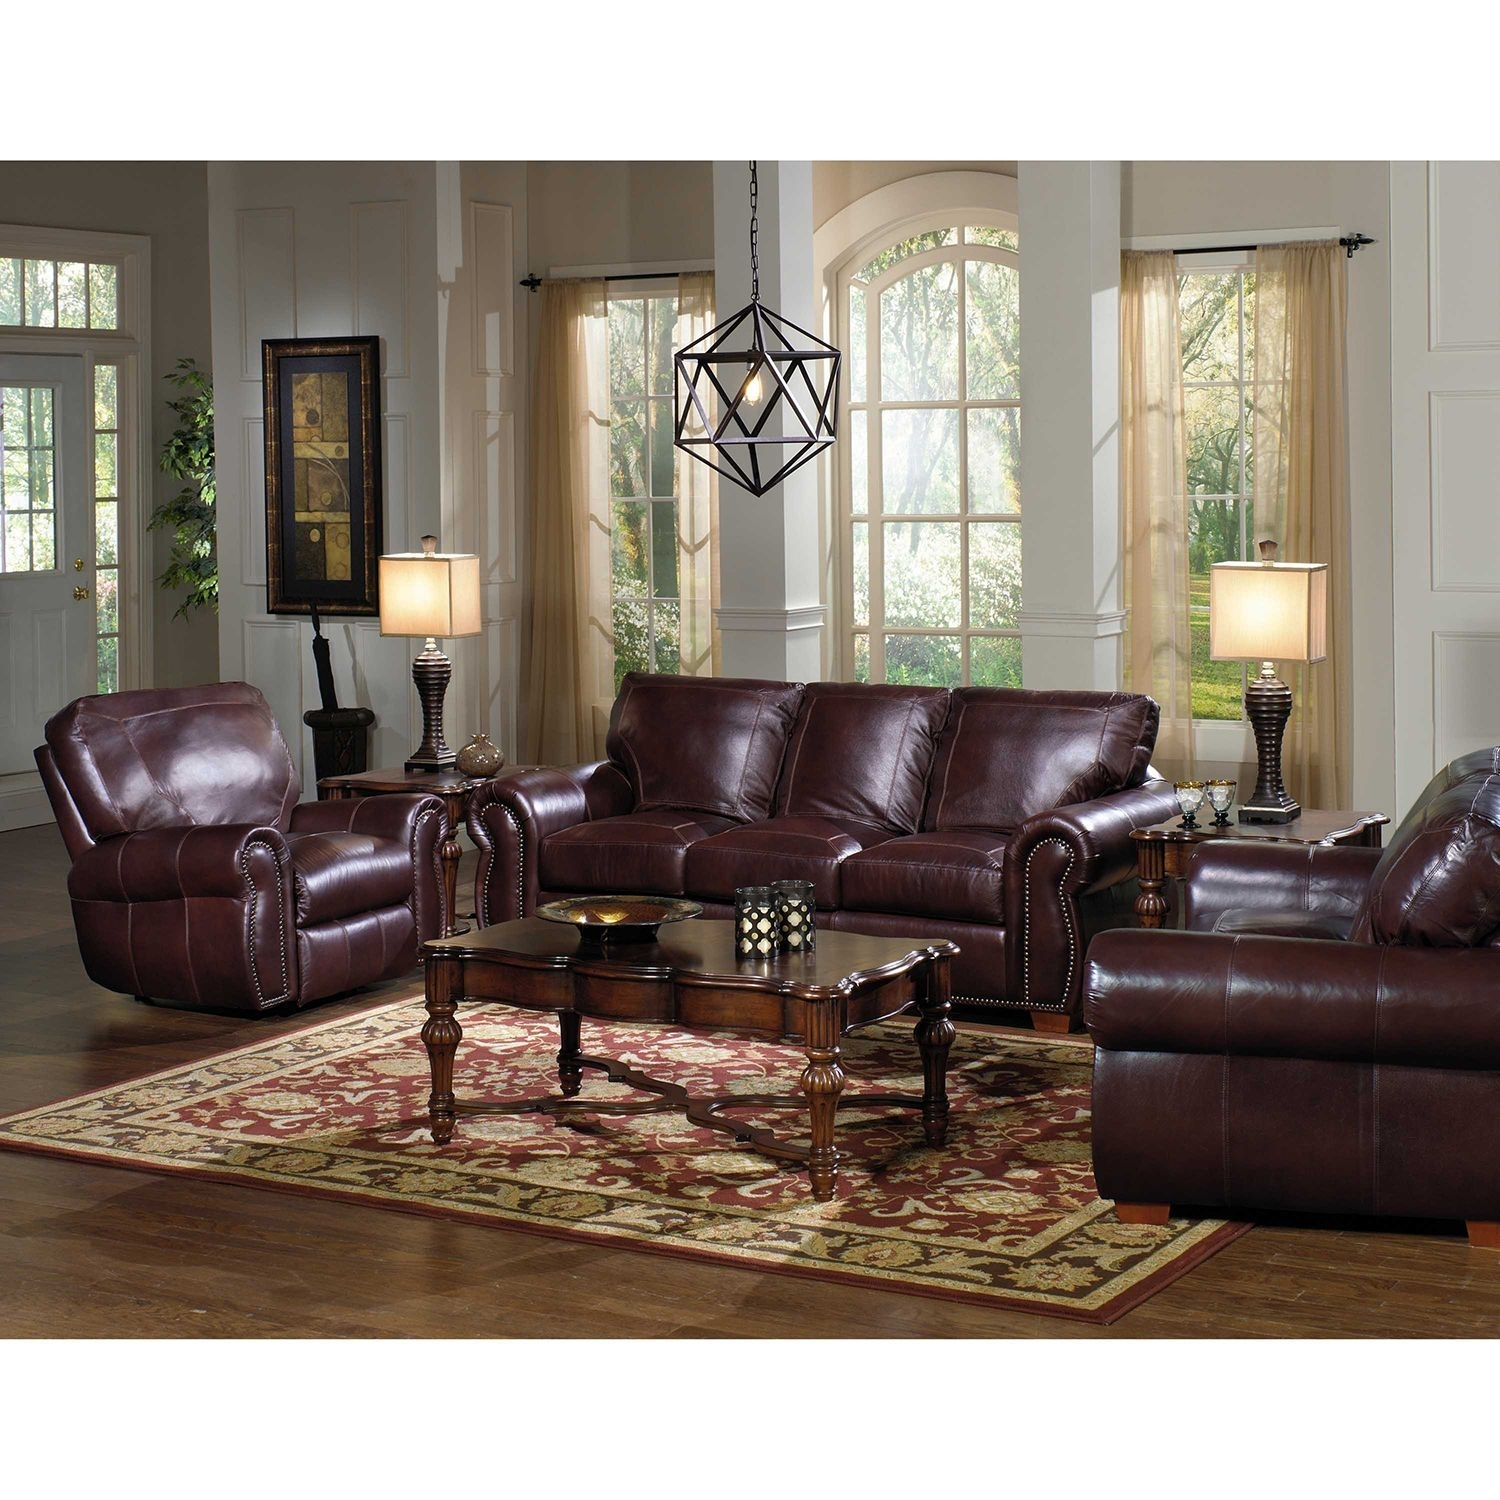 Kingston Top-Grain Leather Sofa, Loveseat And Recliner Living Room with regard to Kingston Sectional Sofas (Image 4 of 10)